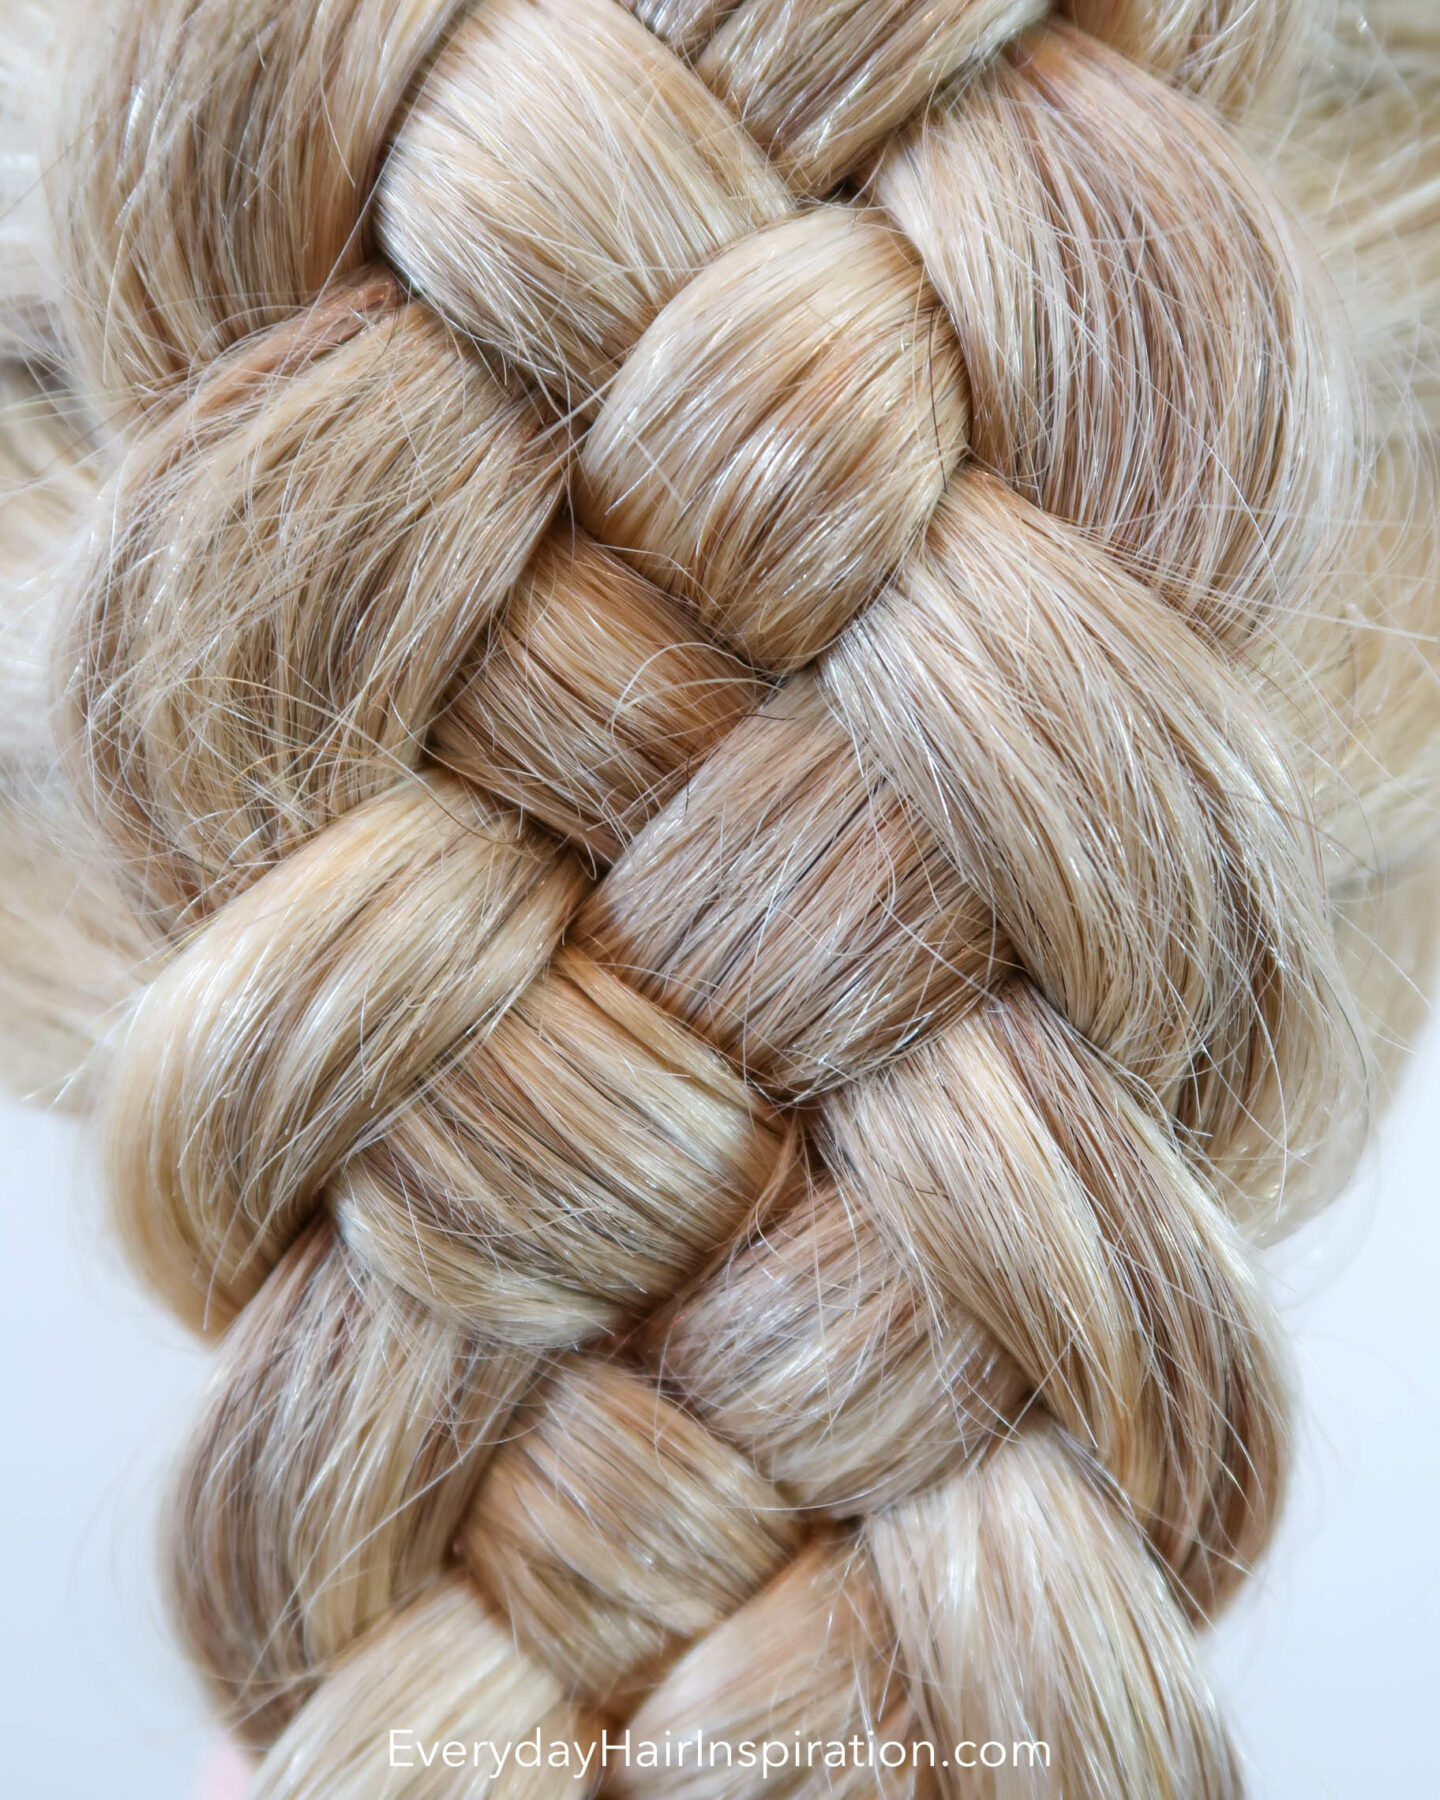 Blonde hairdresser doll with the hair styled into a dutch 5 strand braid, close up of the braid.